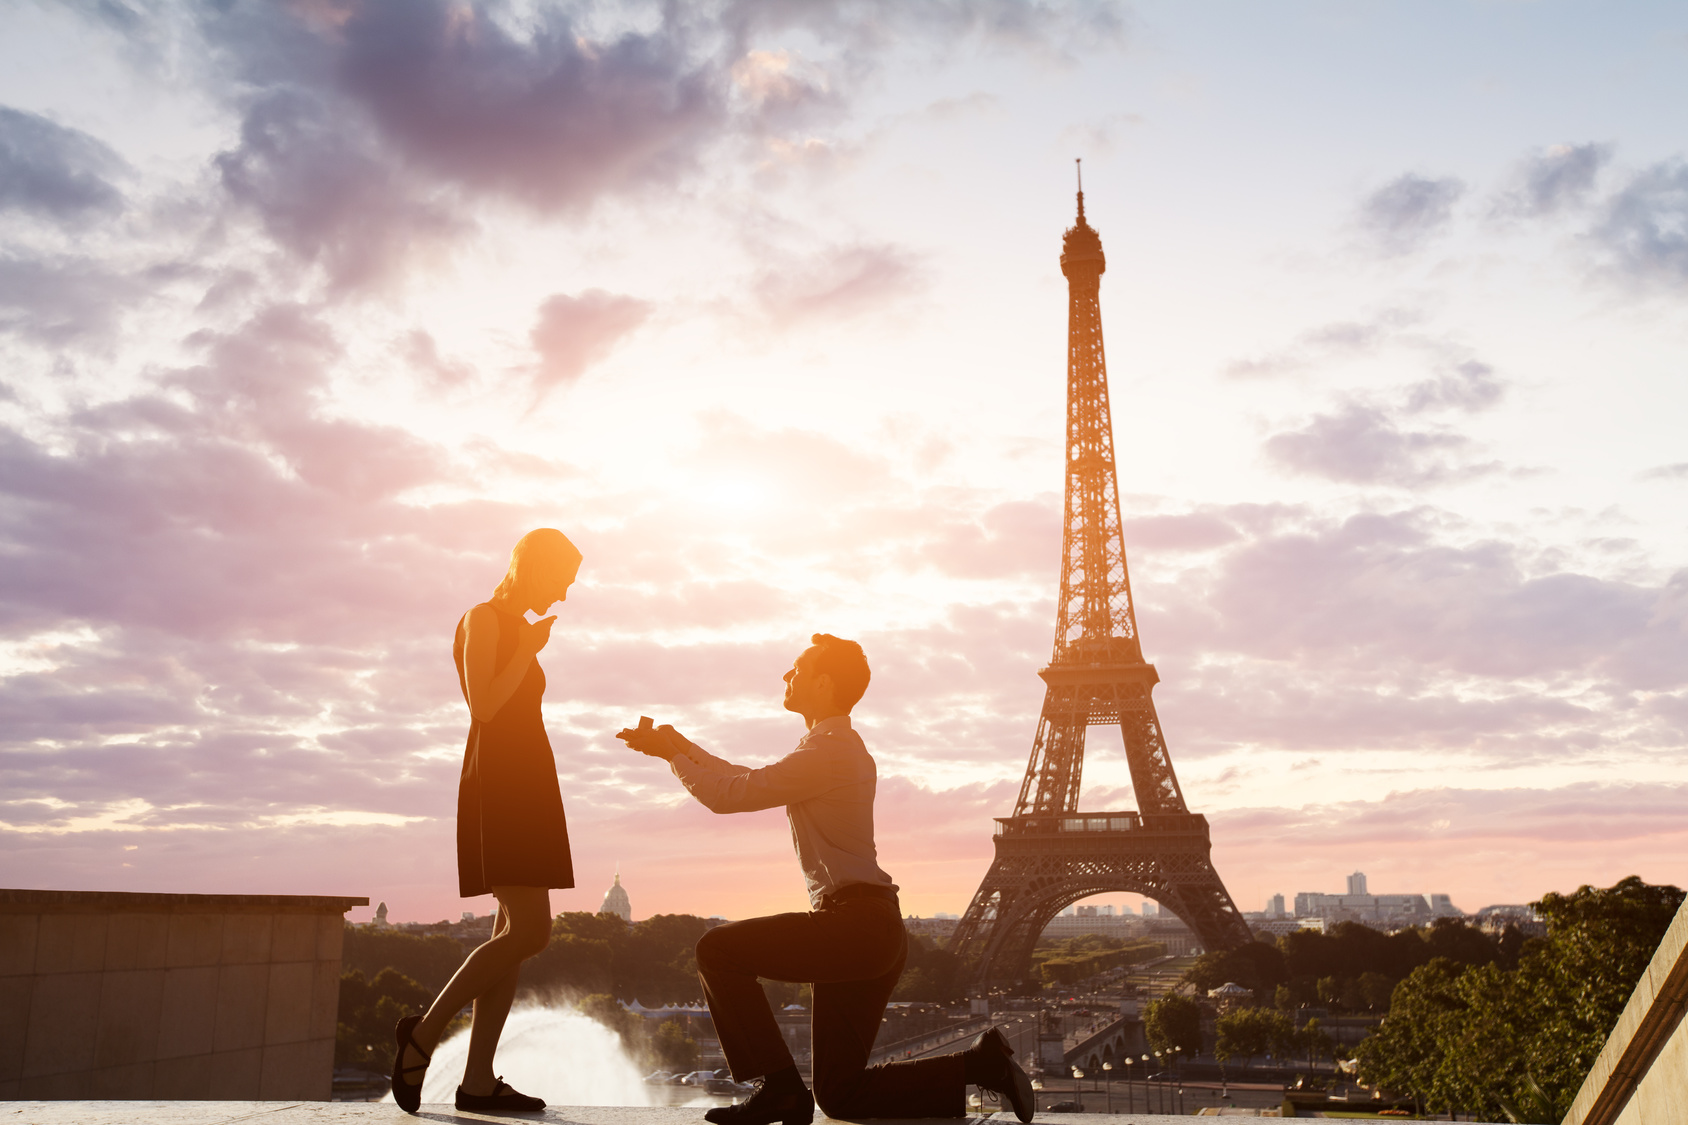 Romantic marriage proposal at Eiffel Tower, Paris, France